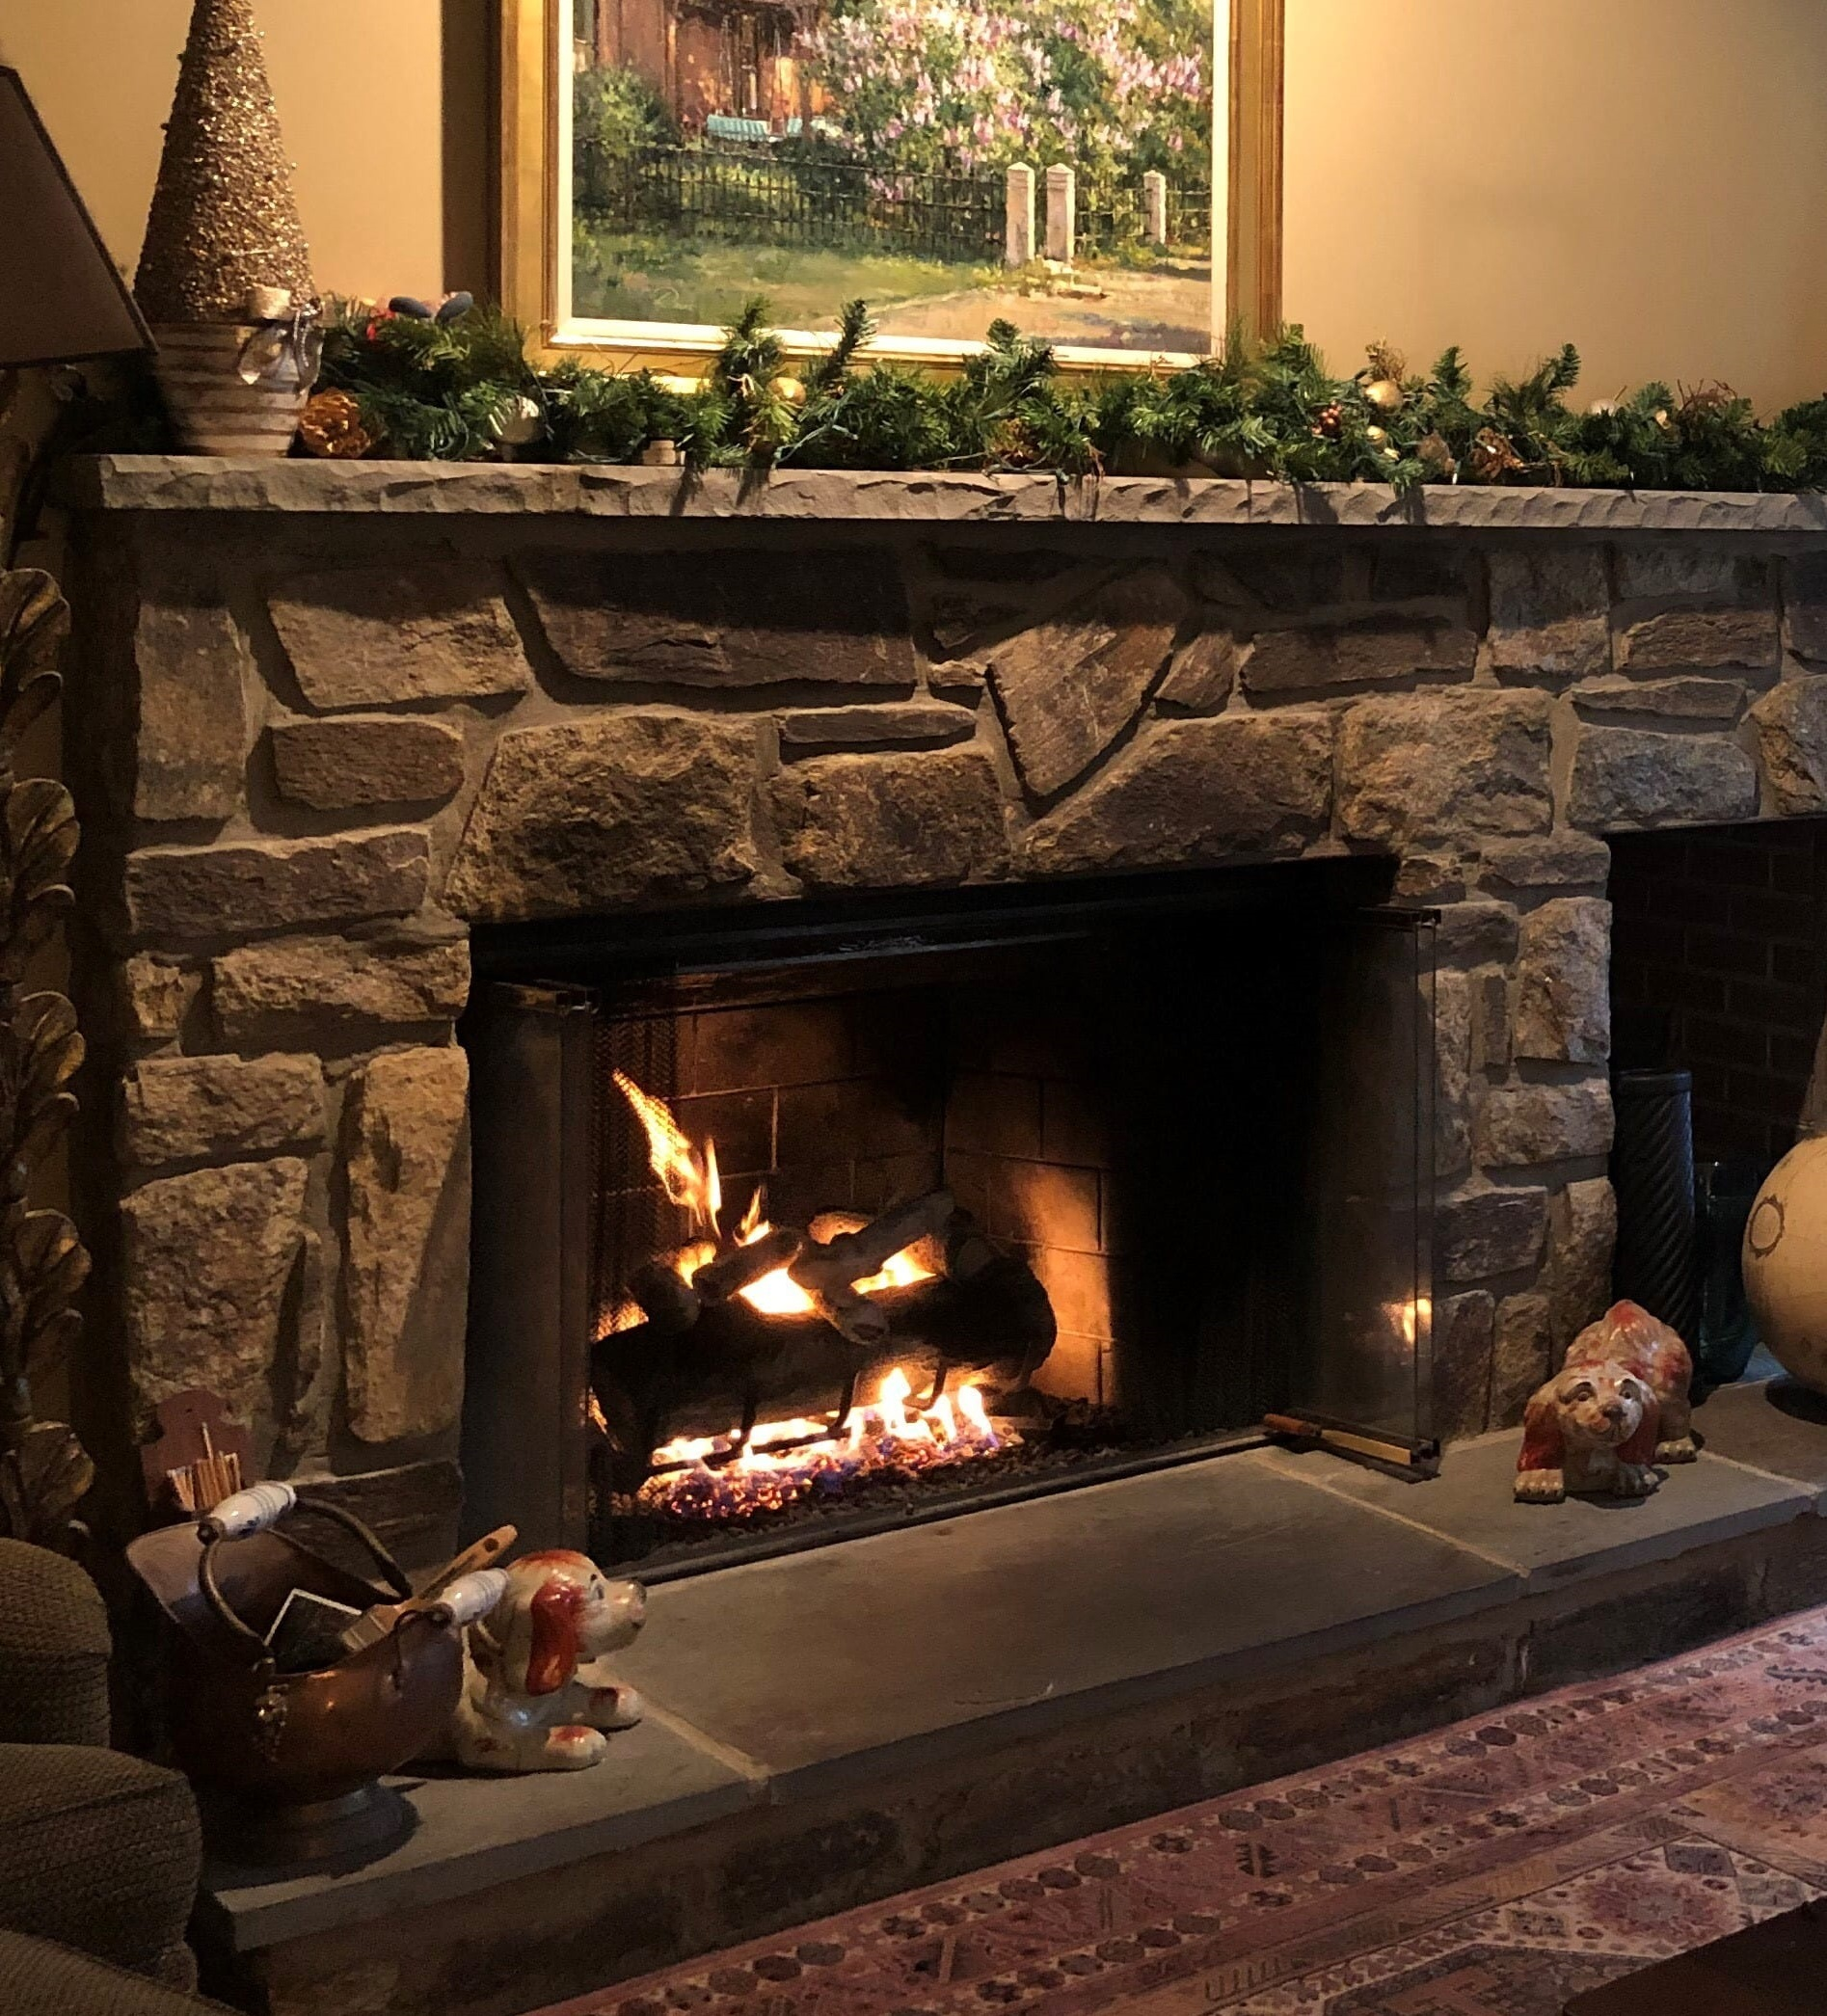 Gas Fireplace Faq Completed Fireplace Repair Projects All Pro Chimney Service 844